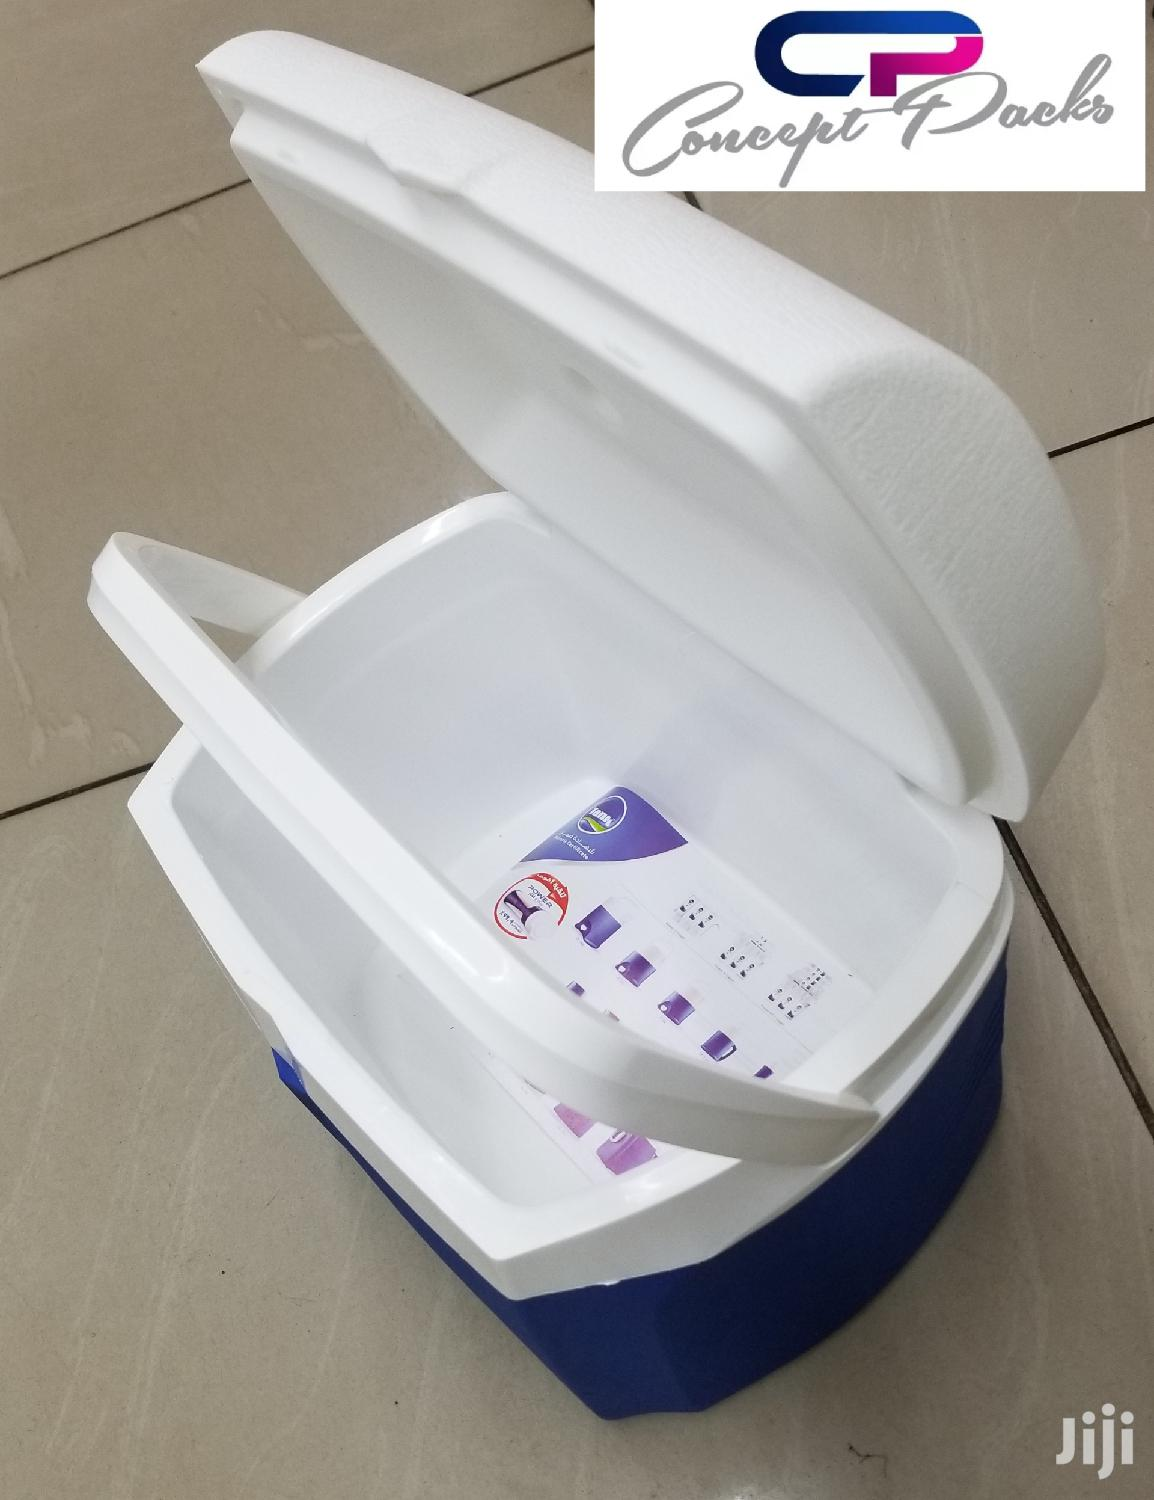 10 Ltrs Cooler Box Tank Brand. Quality Product. | Kitchen & Dining for sale in Nairobi Central, Nairobi, Kenya